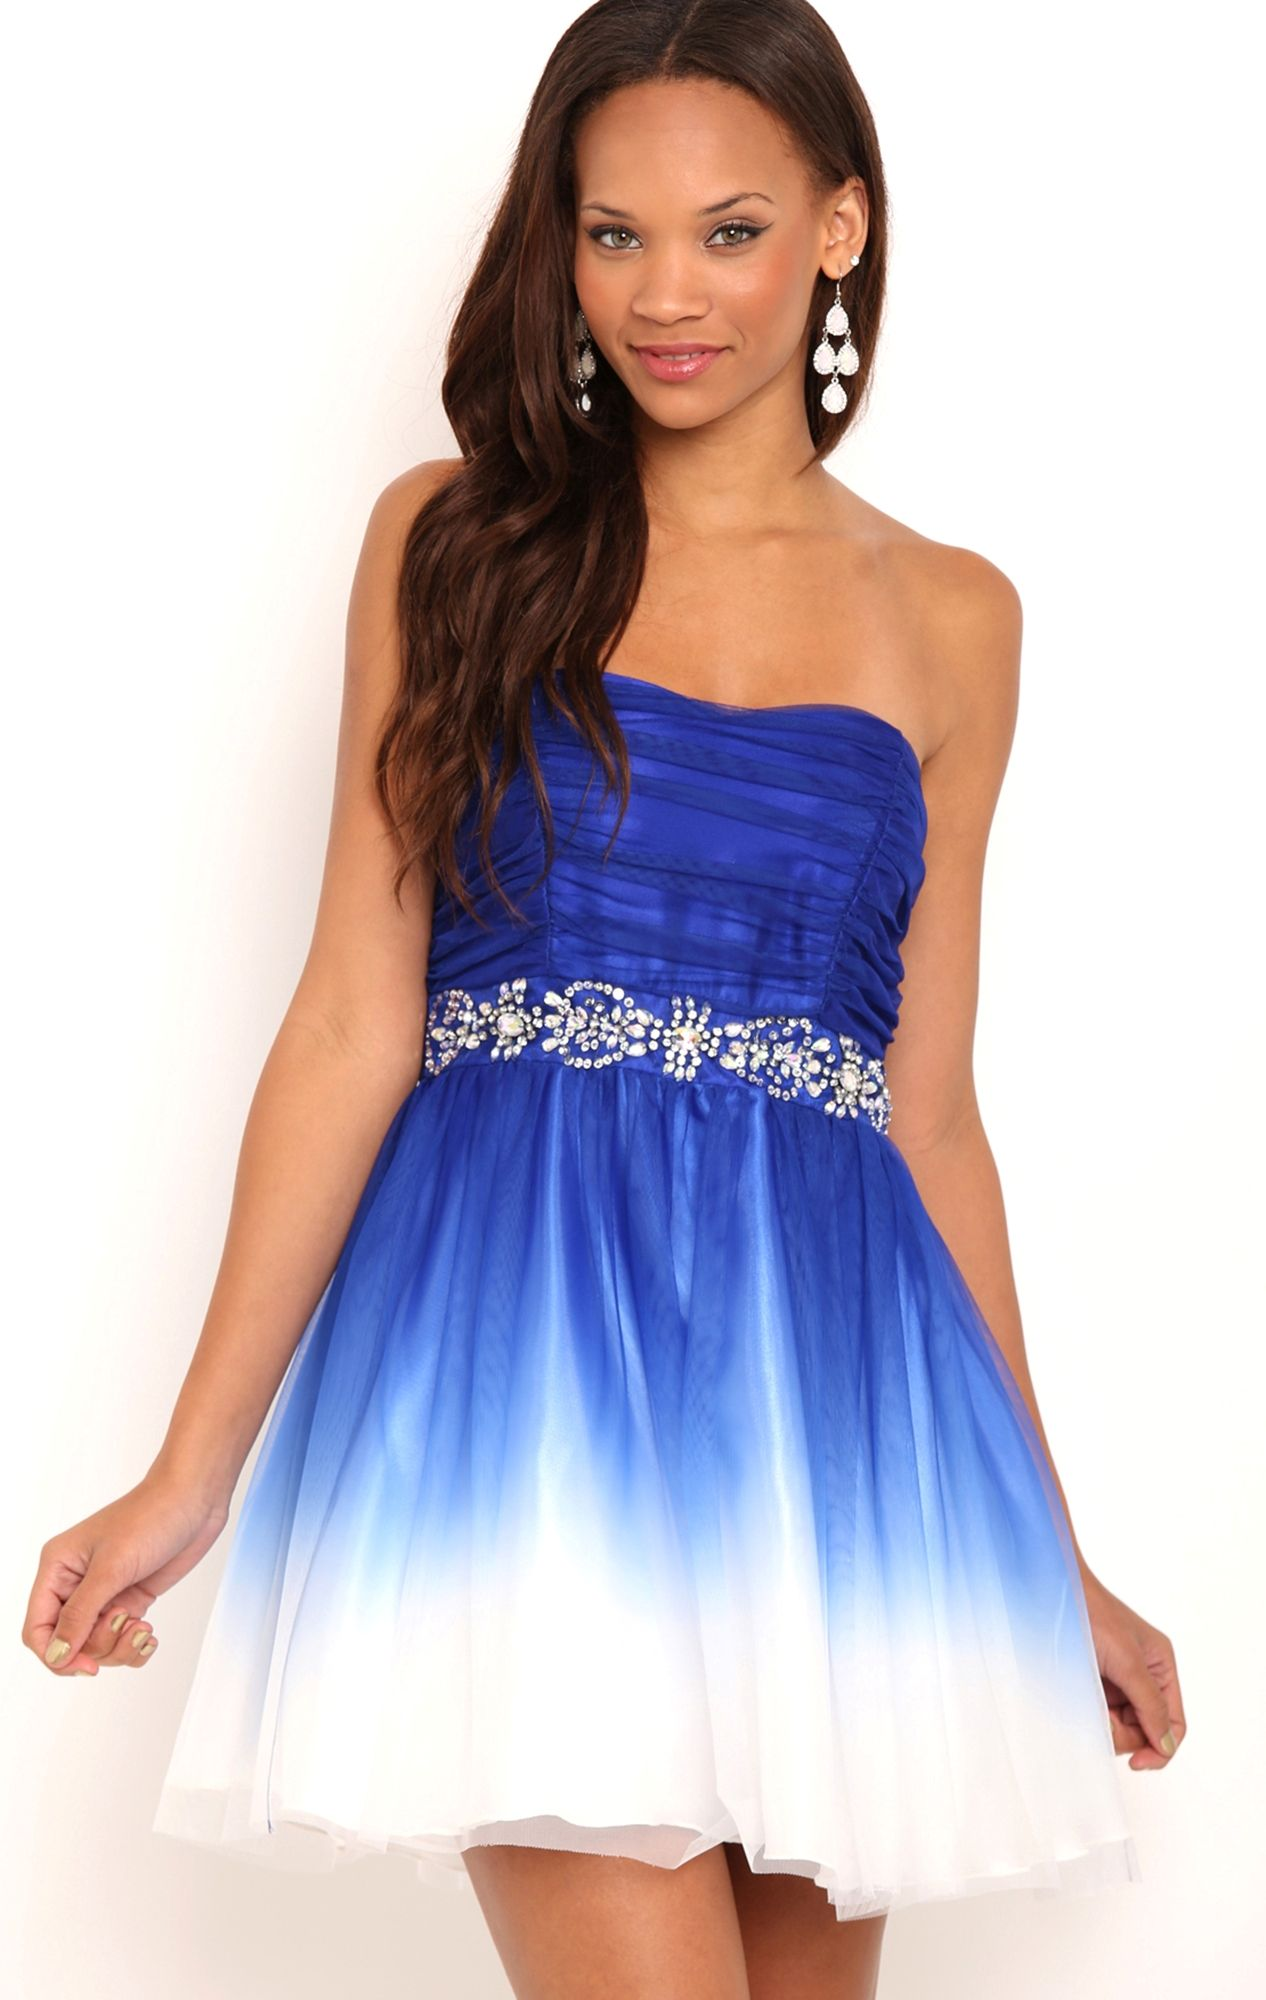 Strapless short royal blue and white ombre dress with stone trim